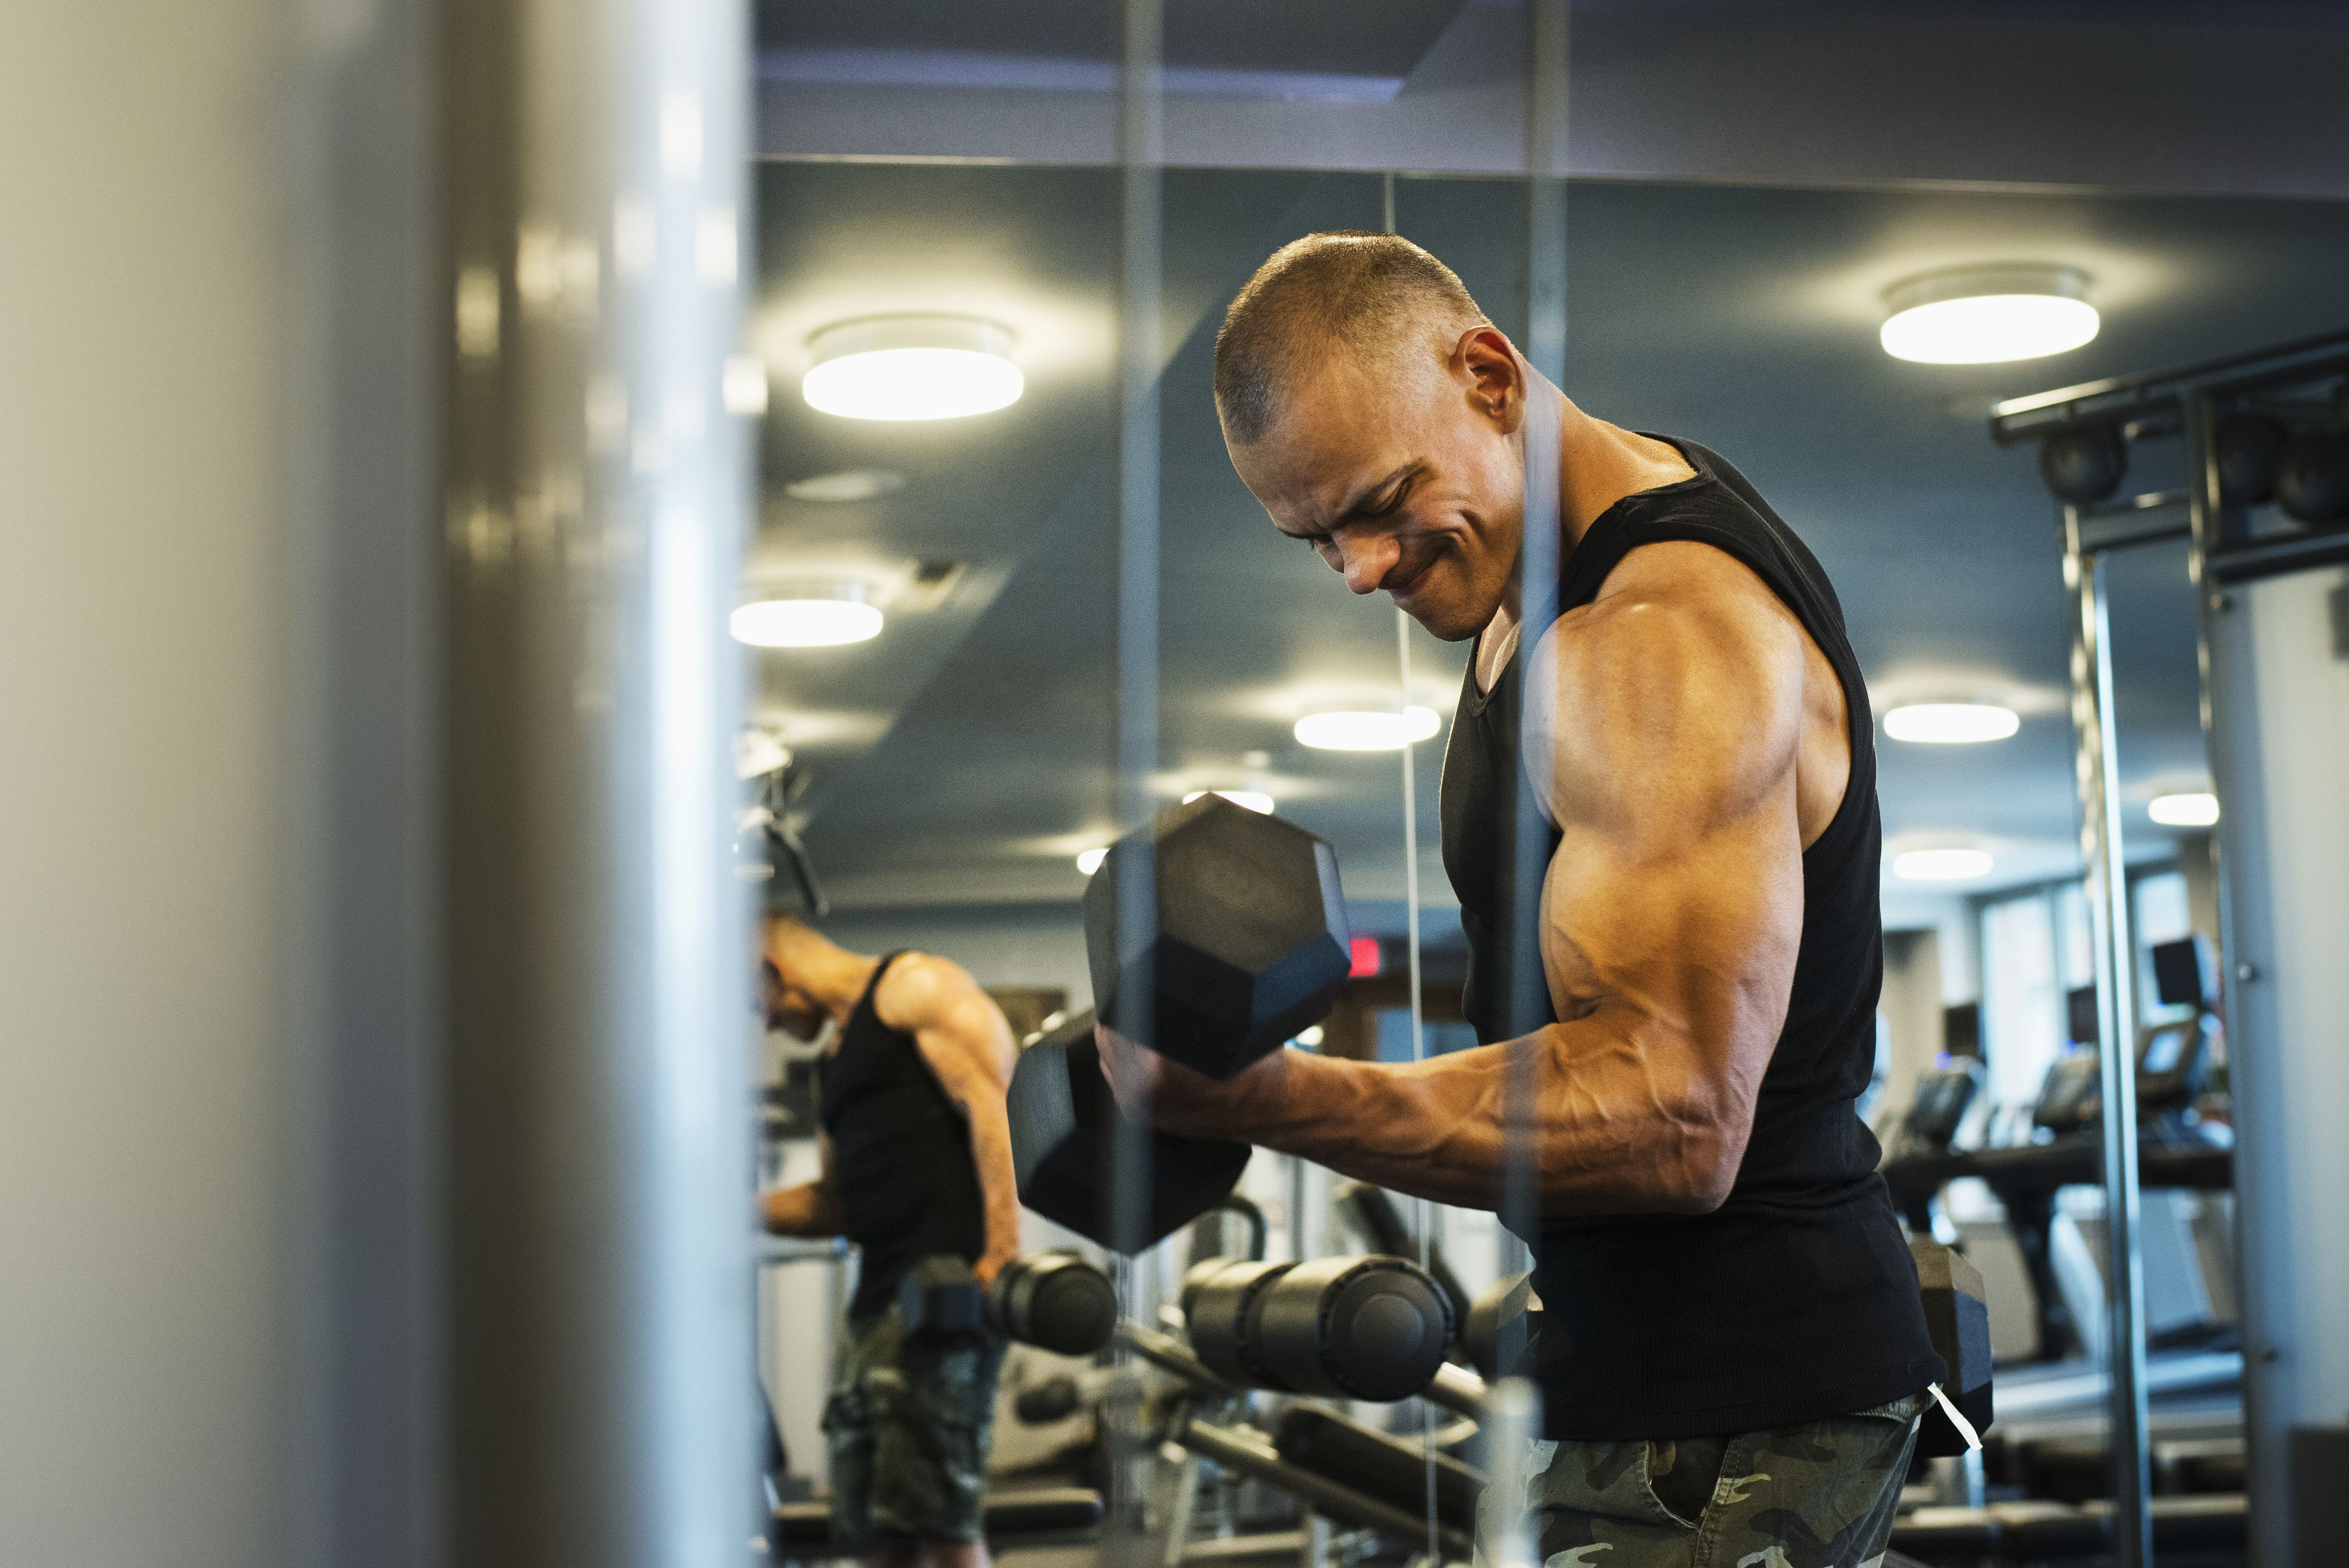 Grunt louder to lift more, says new research